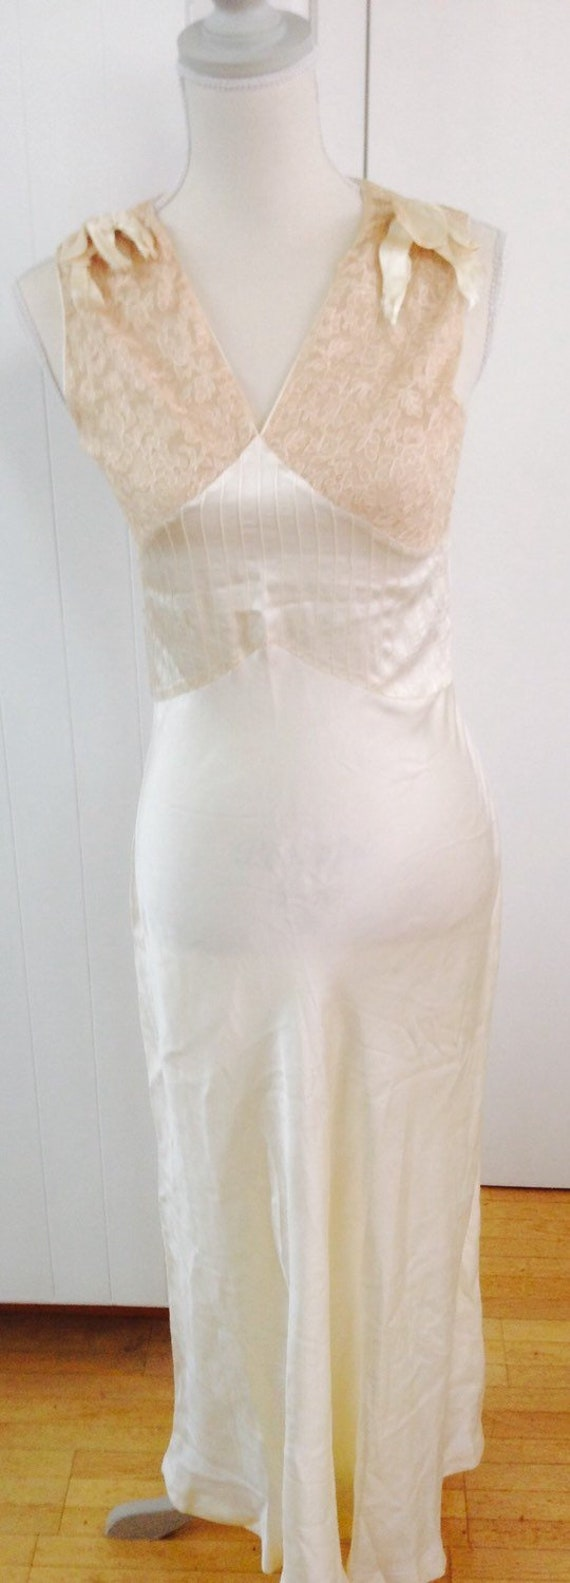 Vintage lingerie 1920 Silk and Lace